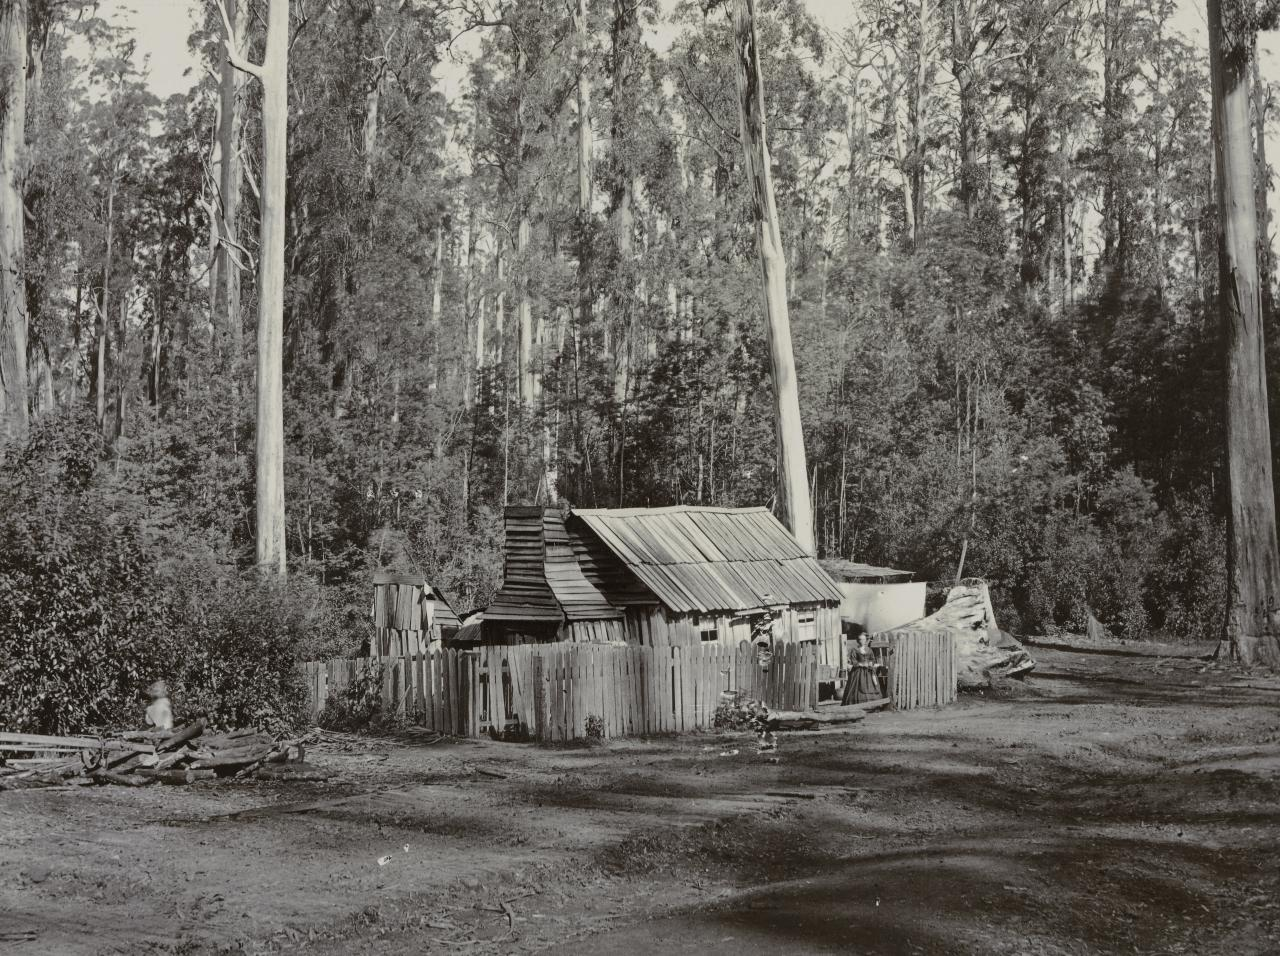 Bush cottage, Blacks' Spur